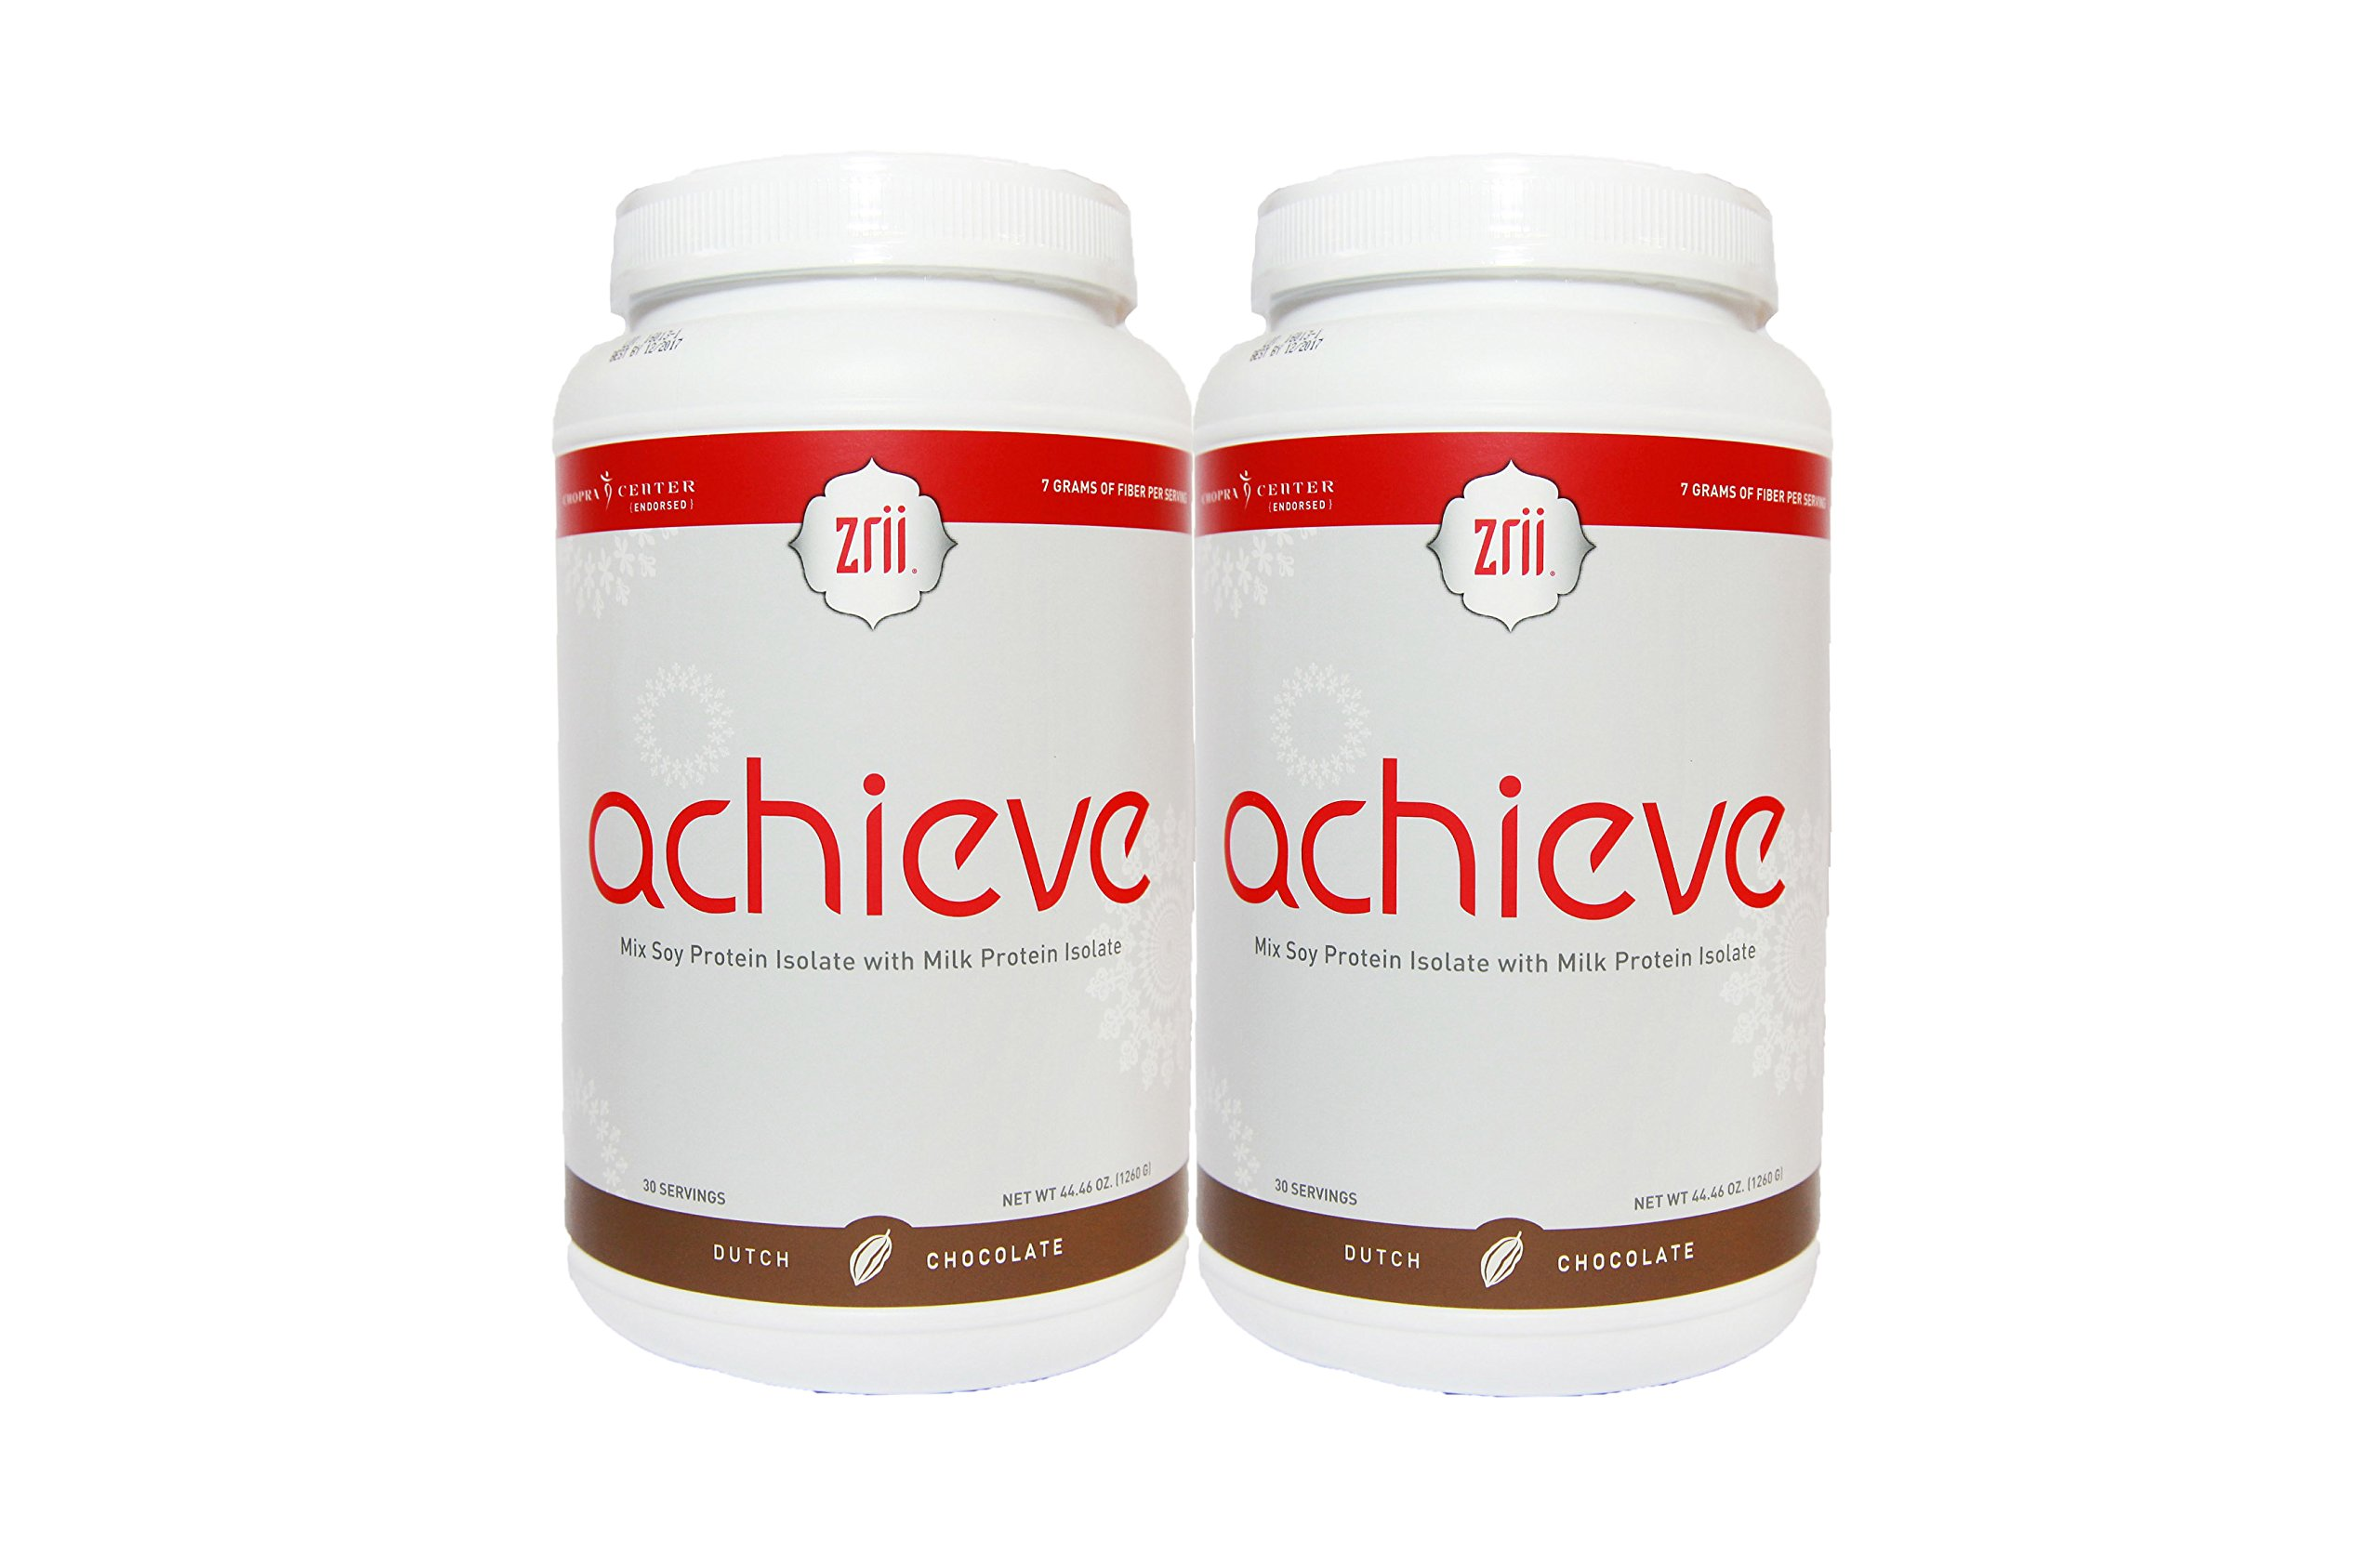 Zrii Achieve (Dutch Chocolate) Meal Replacement 2 Bottles Mix Soy Protein Isolate with Milk Protein Isolate